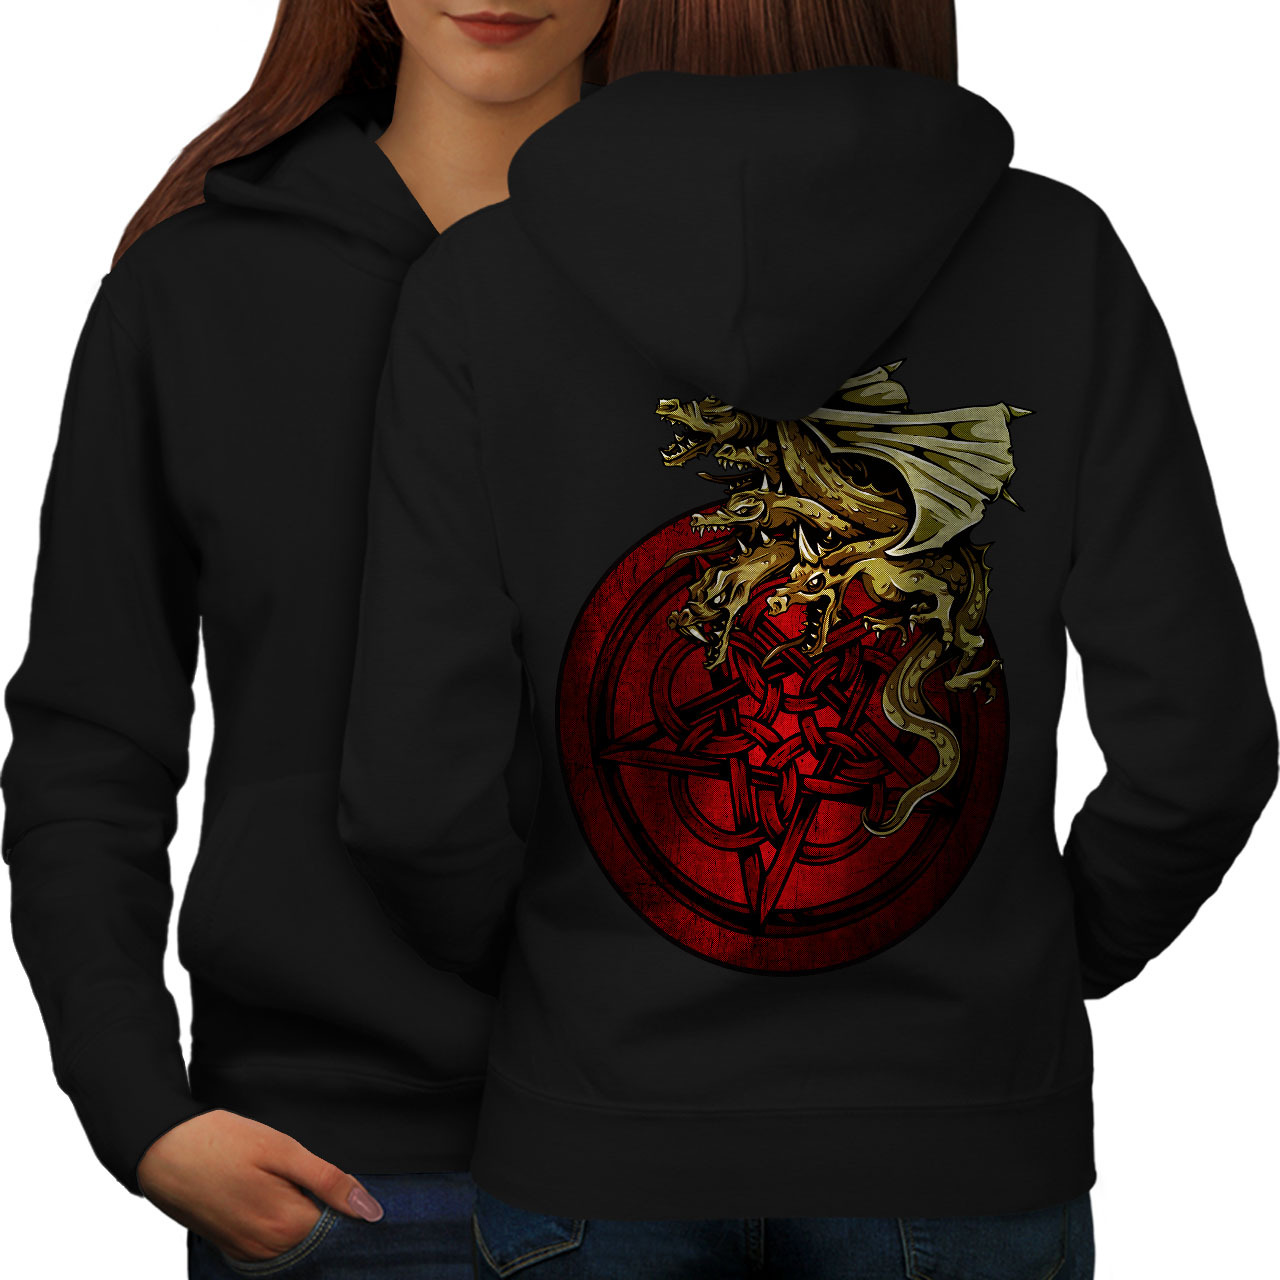 Dragon Mystic Art Fantasy Sweatshirt Hoody Myth Monster Women Hoodie Back - $21.99 - $22.99